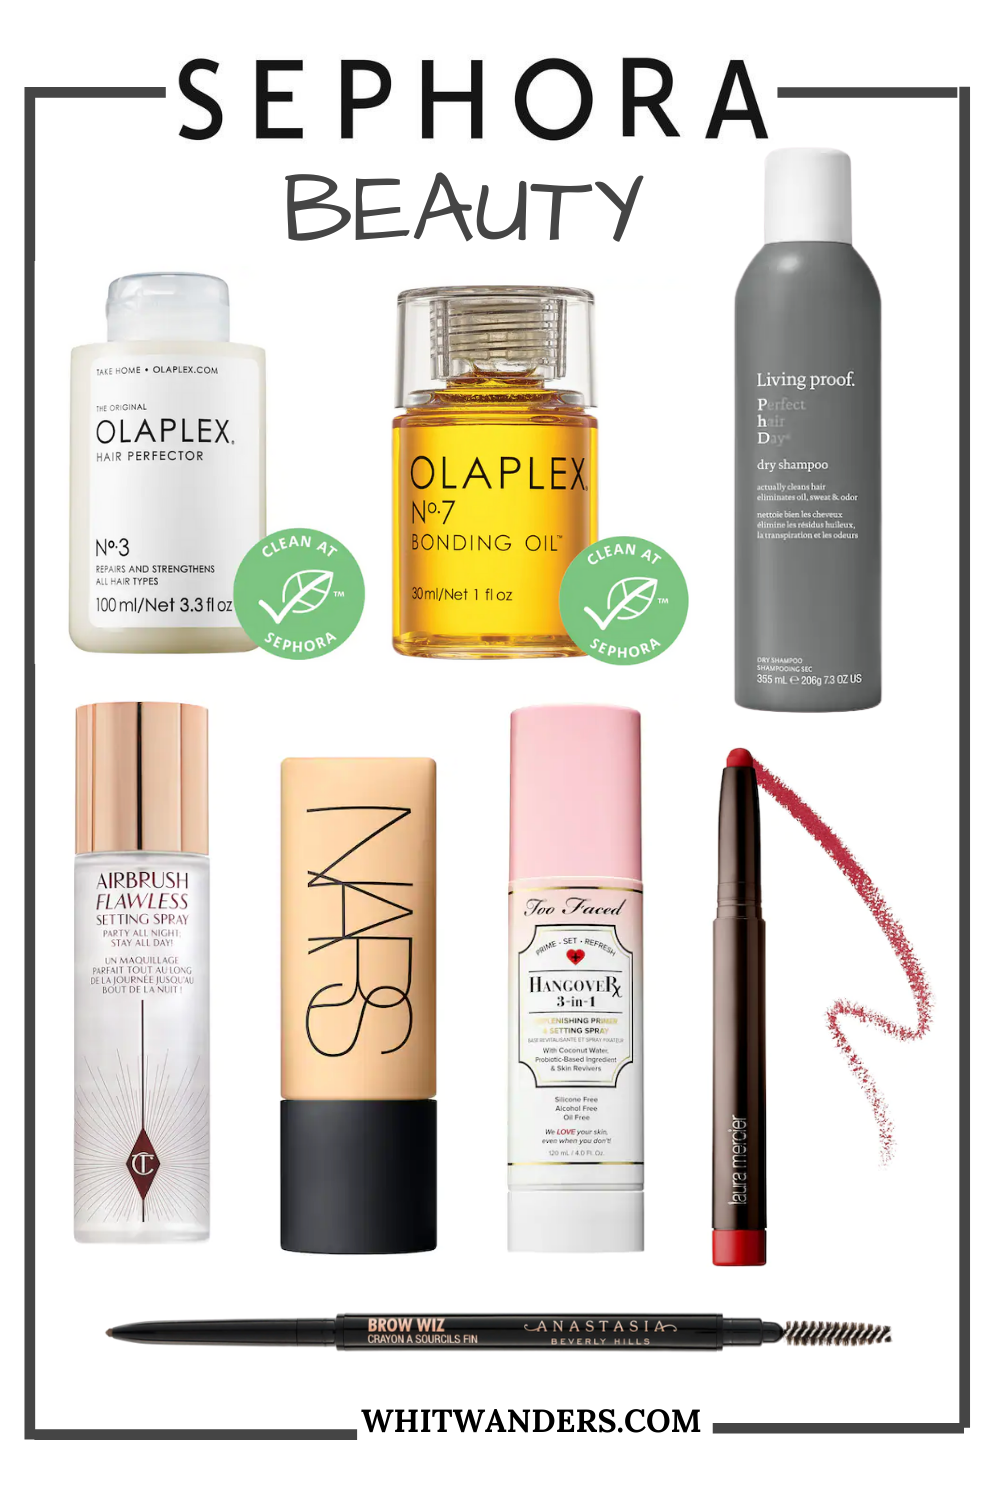 Sephora Beauty Insider Sale by popular Seattle beauty blog, Whit Wanders: collage image of Sephora olaplex bonding oil, Olaplex hair protection, Living Proof dry shampoo, Nars foundation, Laura Mercer red lip pencil, Too Faced setting spray, and Anastasia Brow Wiz.